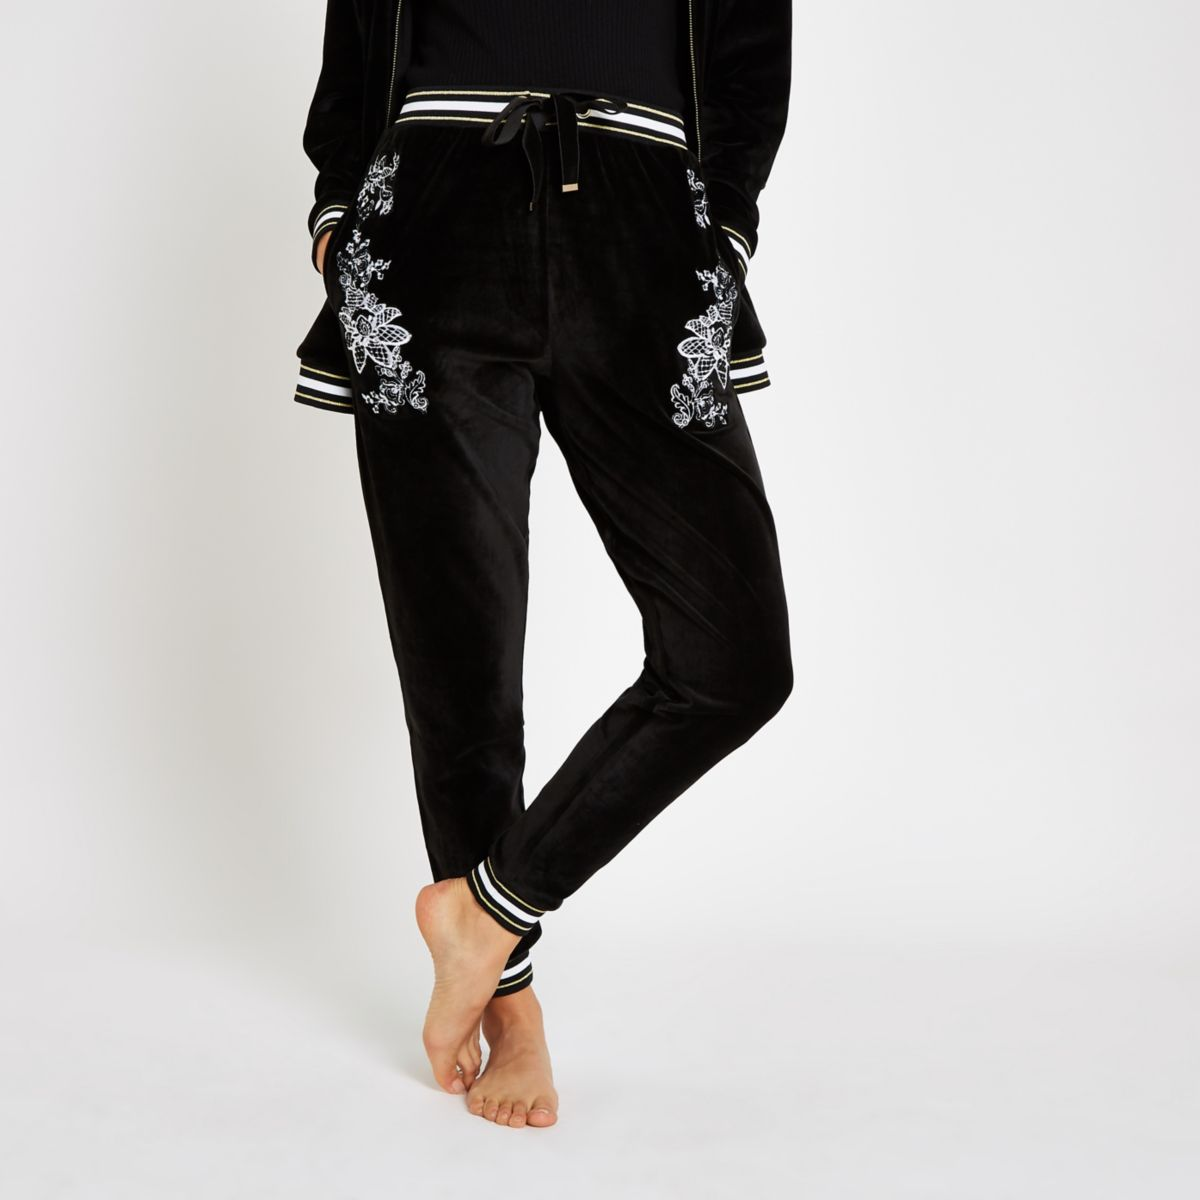 Black floral embroidered loungewear joggers